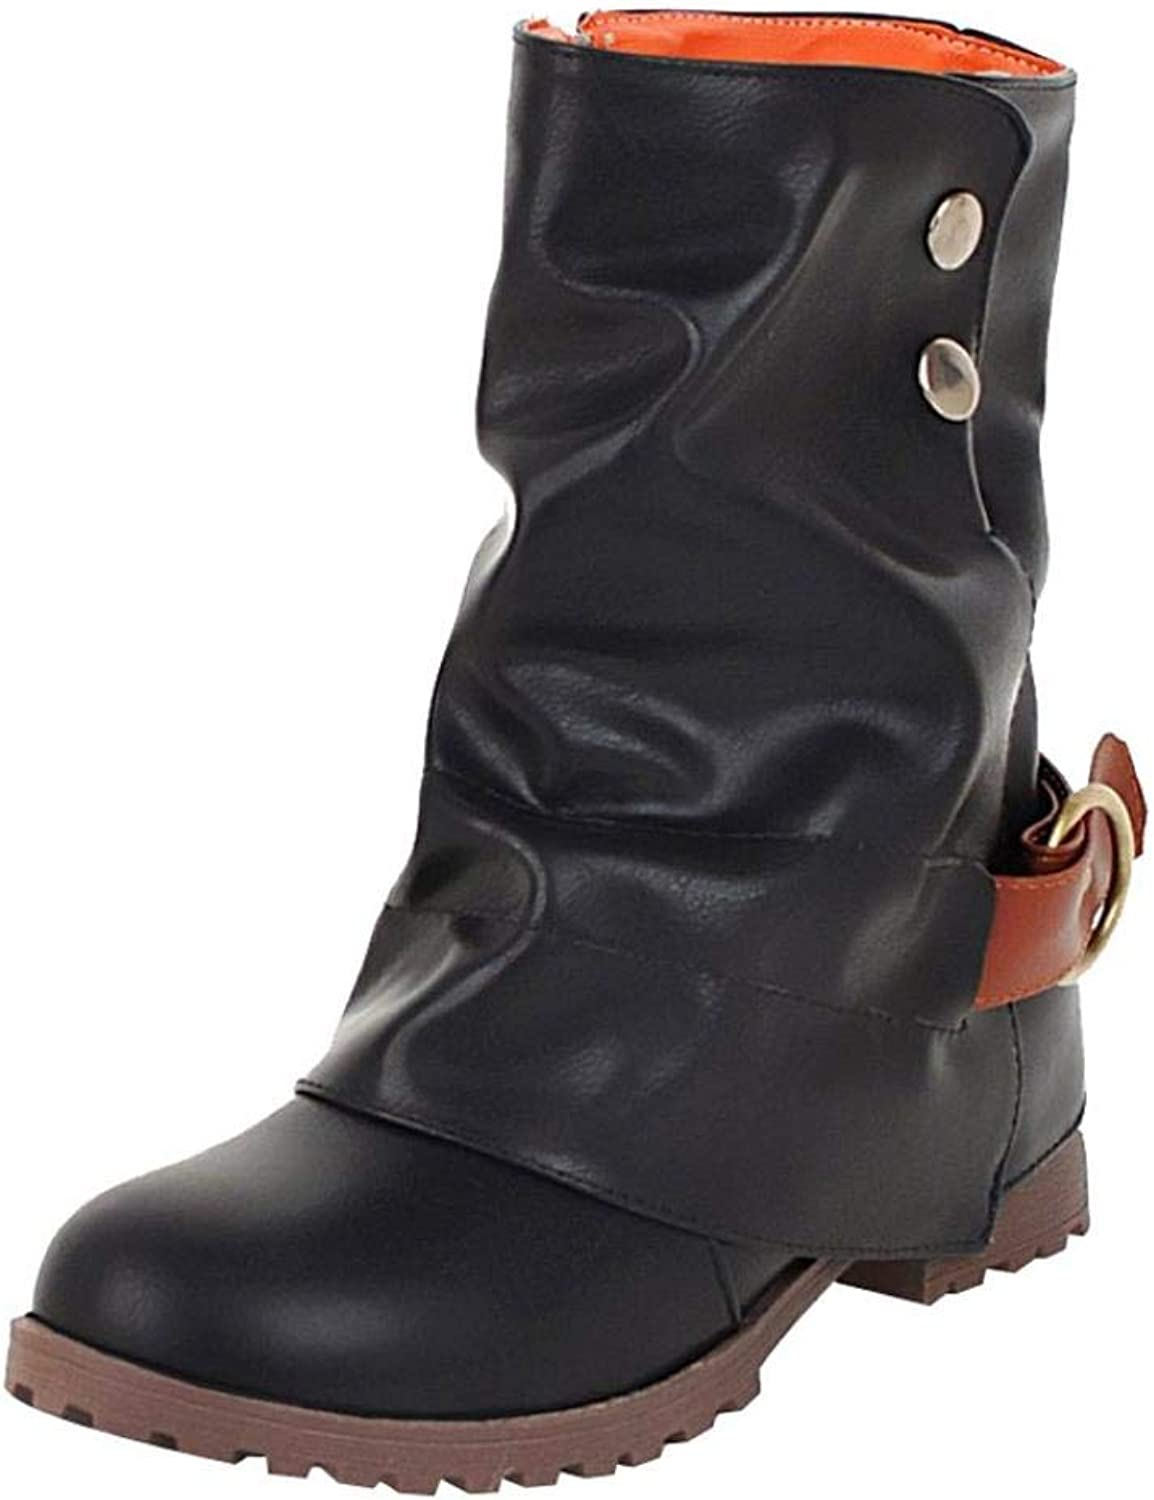 Women Warm Mid Calf High Boots Buckled Strap Artificial Leather Patchwork shoes (US 6.5, Black)